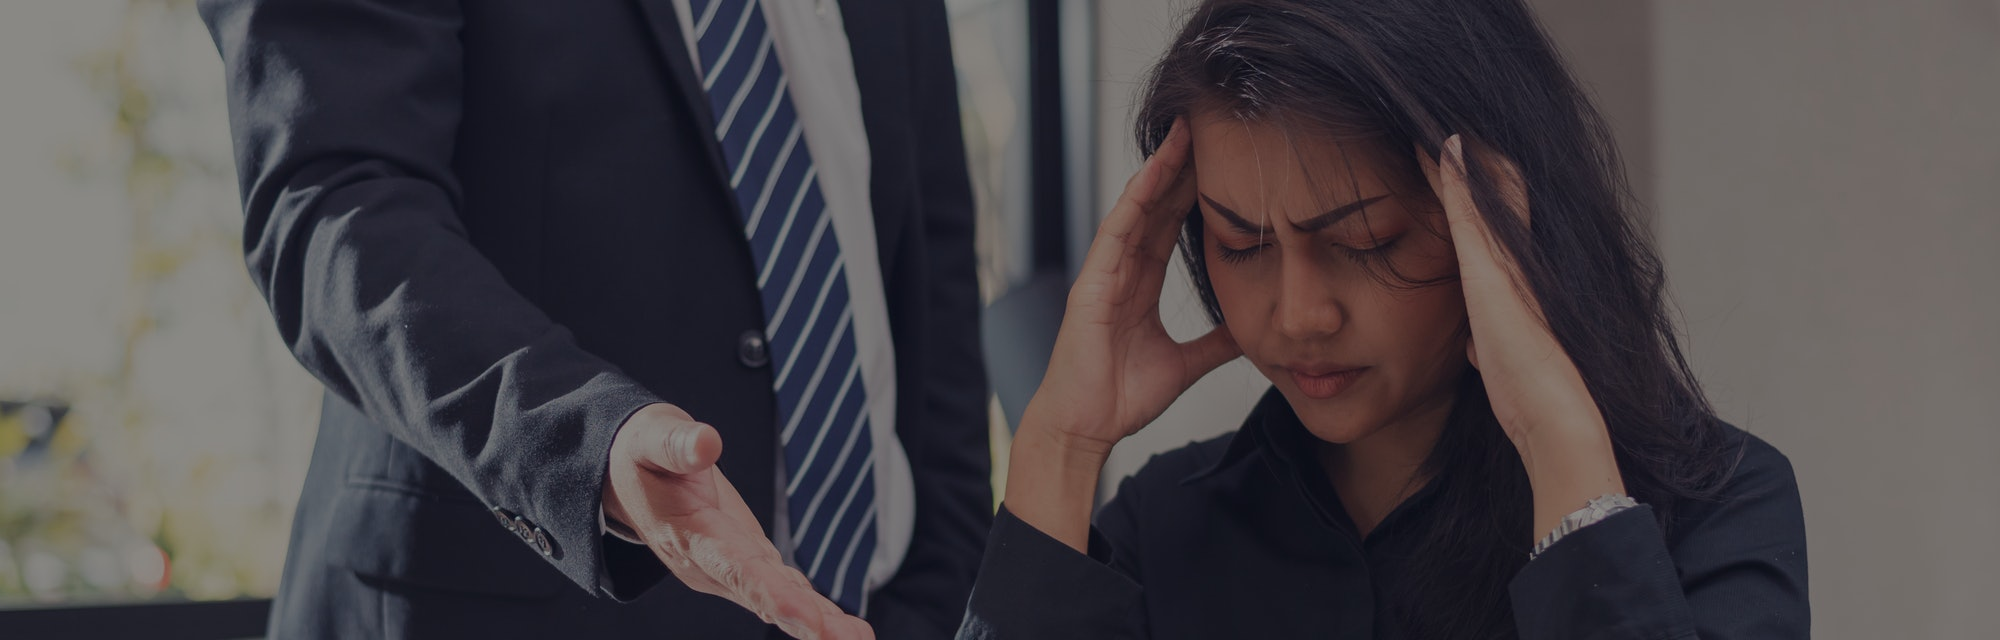 woman employee stressed and feeling frustrated,Secretary suffering from headache under boss pressure